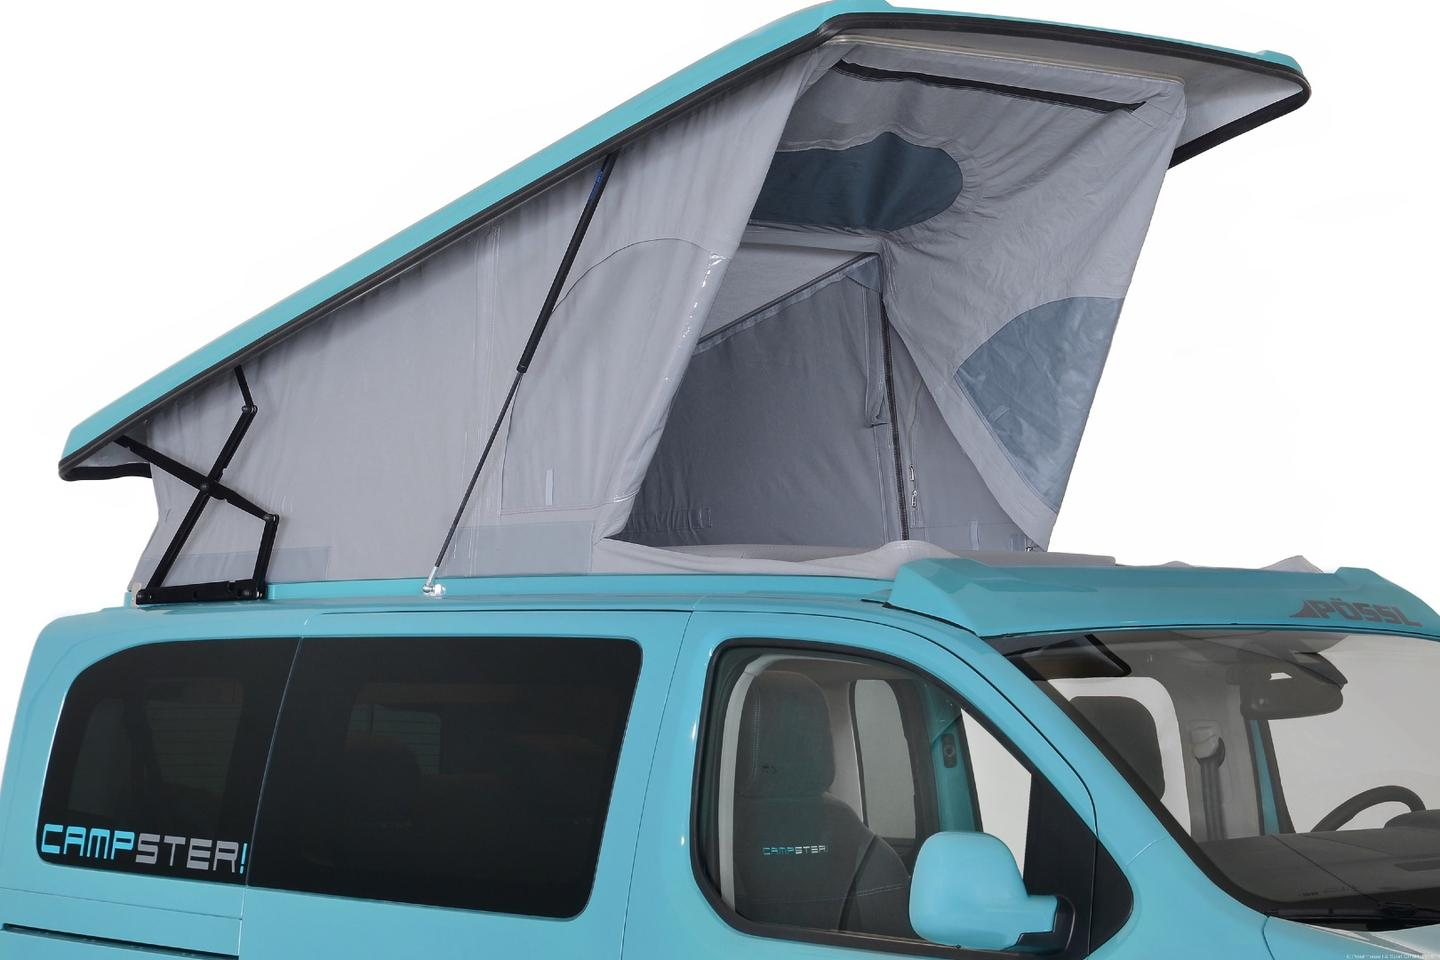 The Campster's pop-up roof comes with a mattress standard